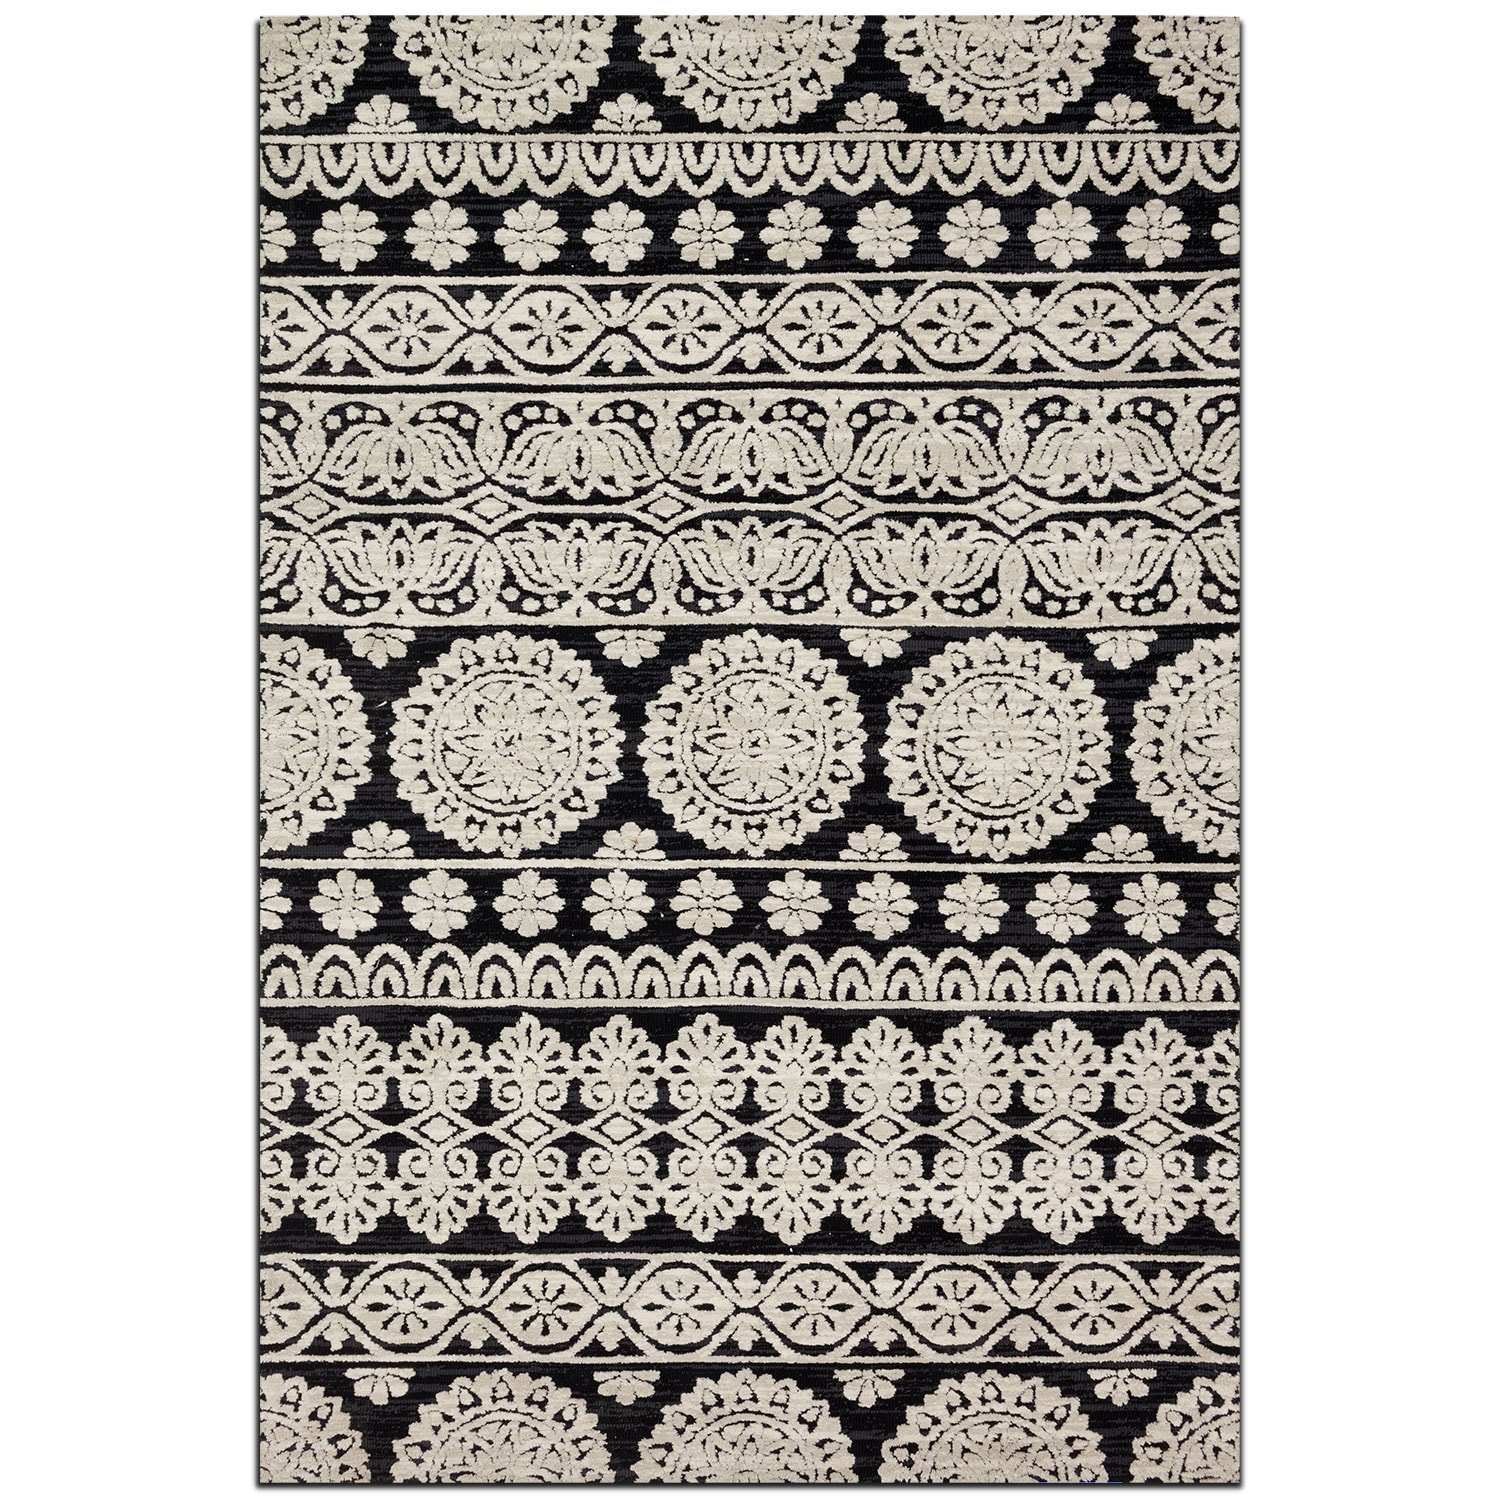 Rugs - Lotus 9' x 13' Rug - Black and Silver